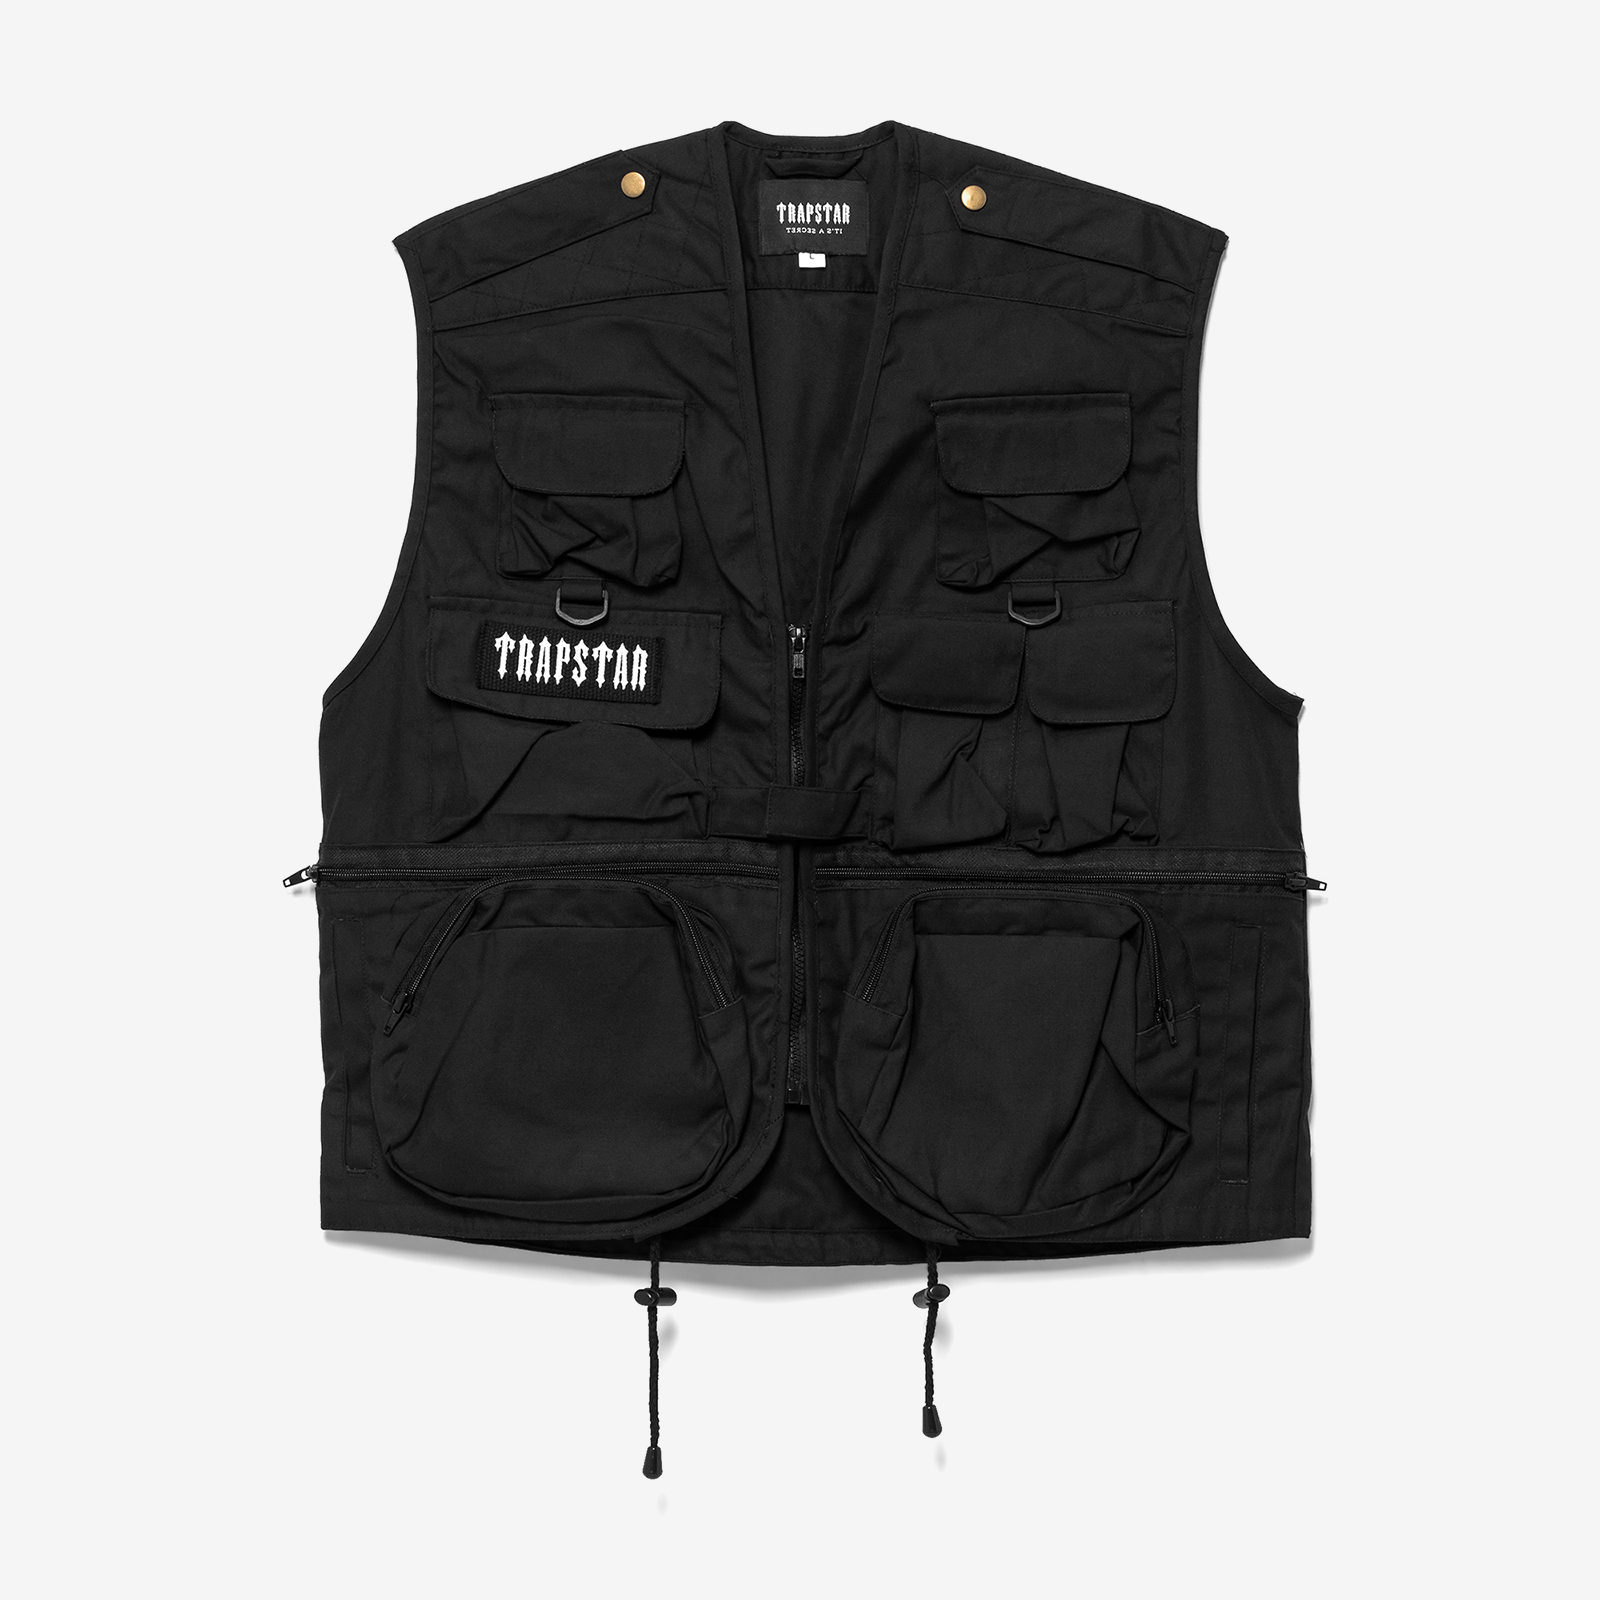 bulletproof vest product photo, body armor product photo, vest product photo, garment product photo, armor product photo, clothing product photo, protective covering product photo